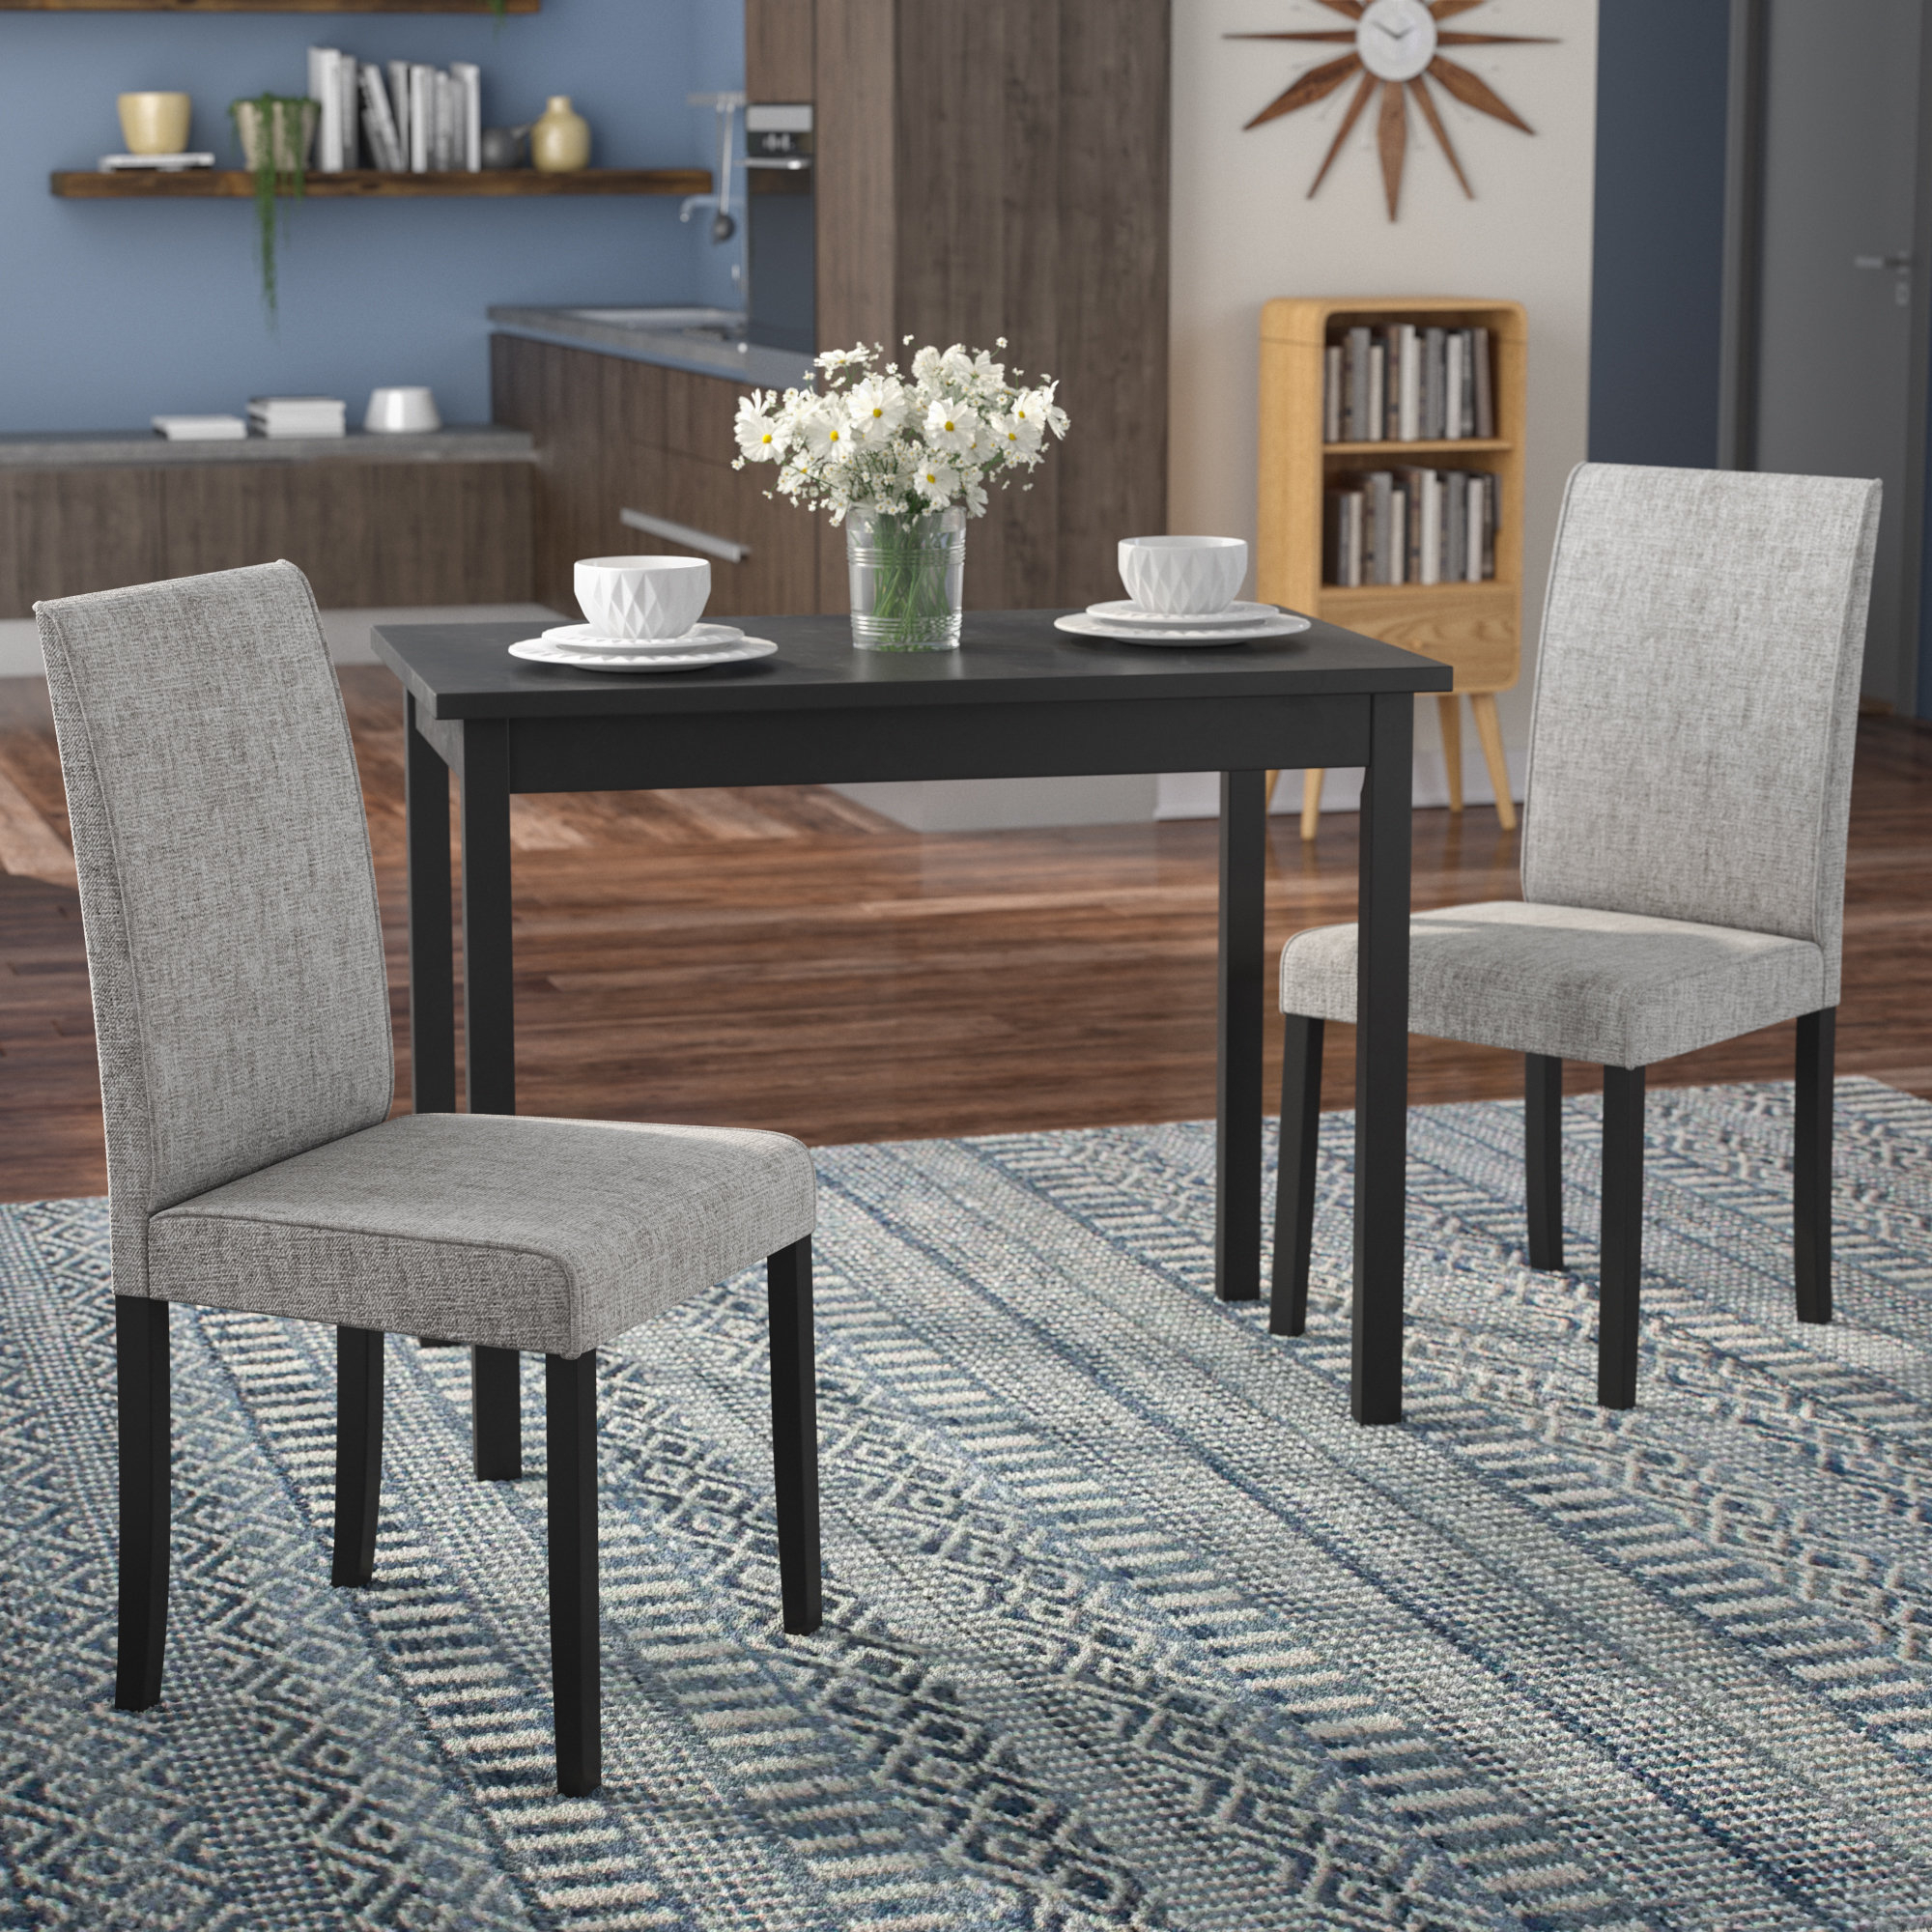 2018 Darvell 3 Piece Dining Set Throughout 3 Piece Dining Sets (View 7 of 20)